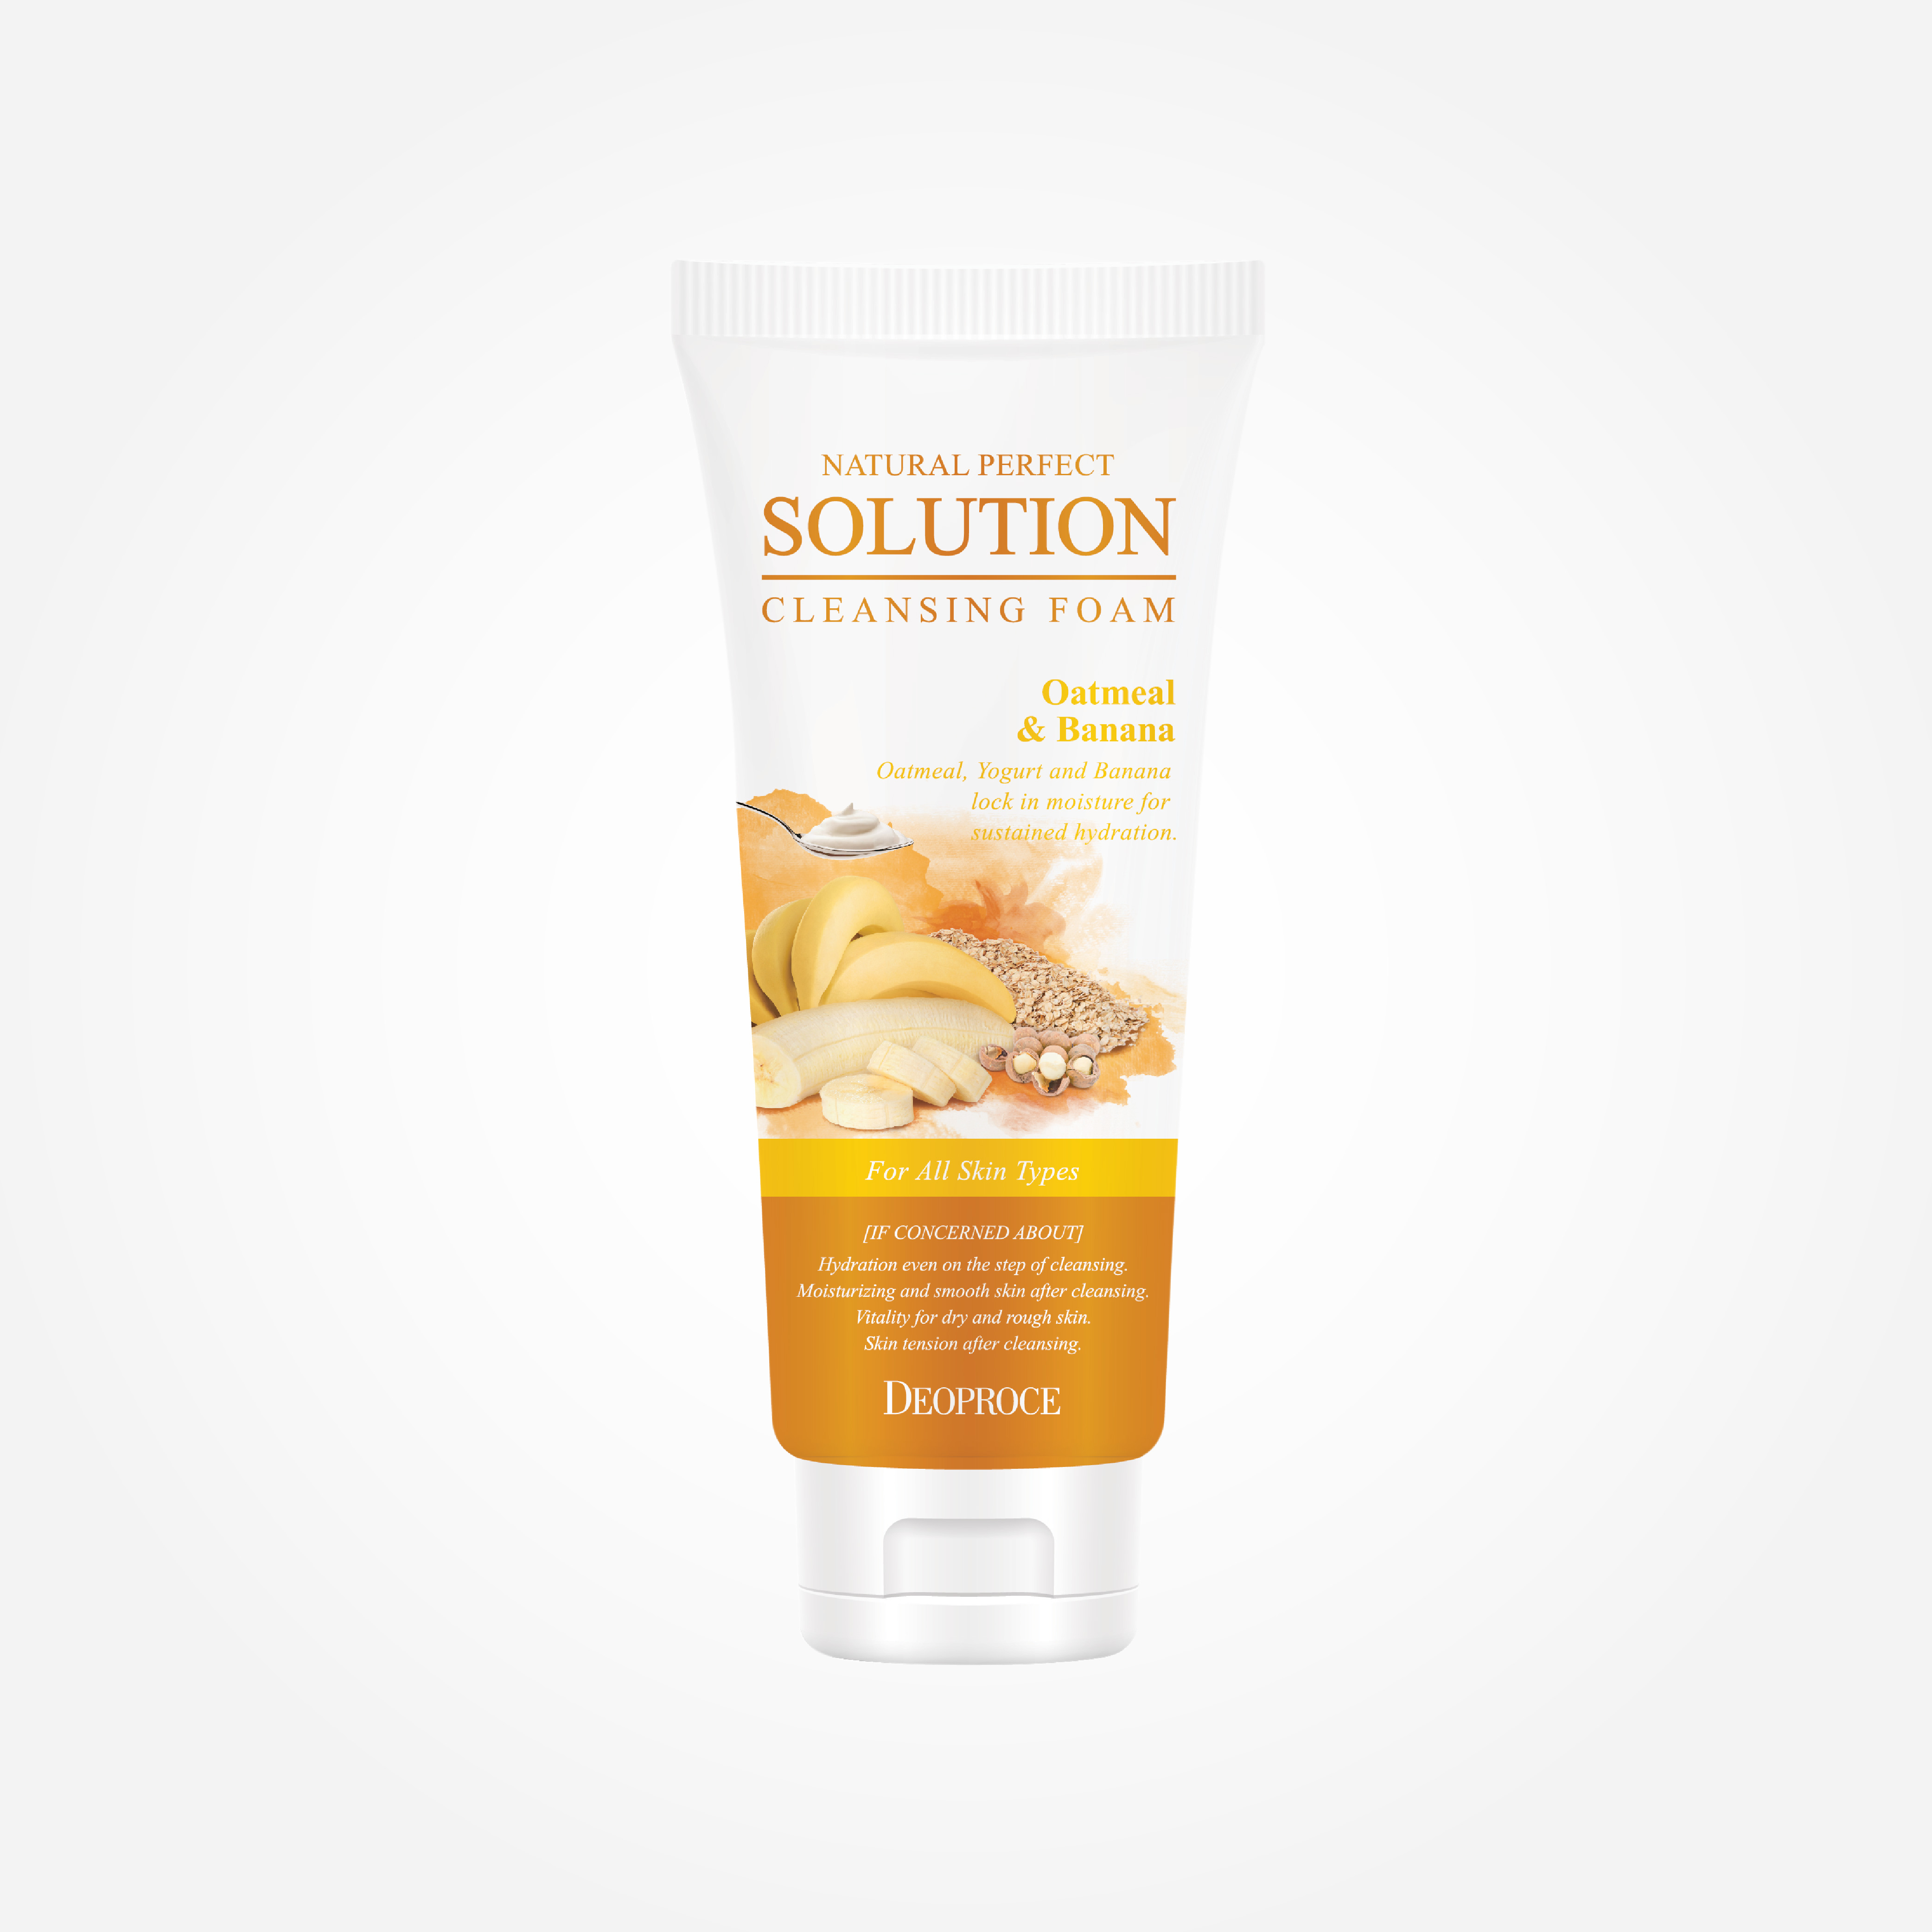 Natural Perfect Solution Cleansing Foam Moisturizing